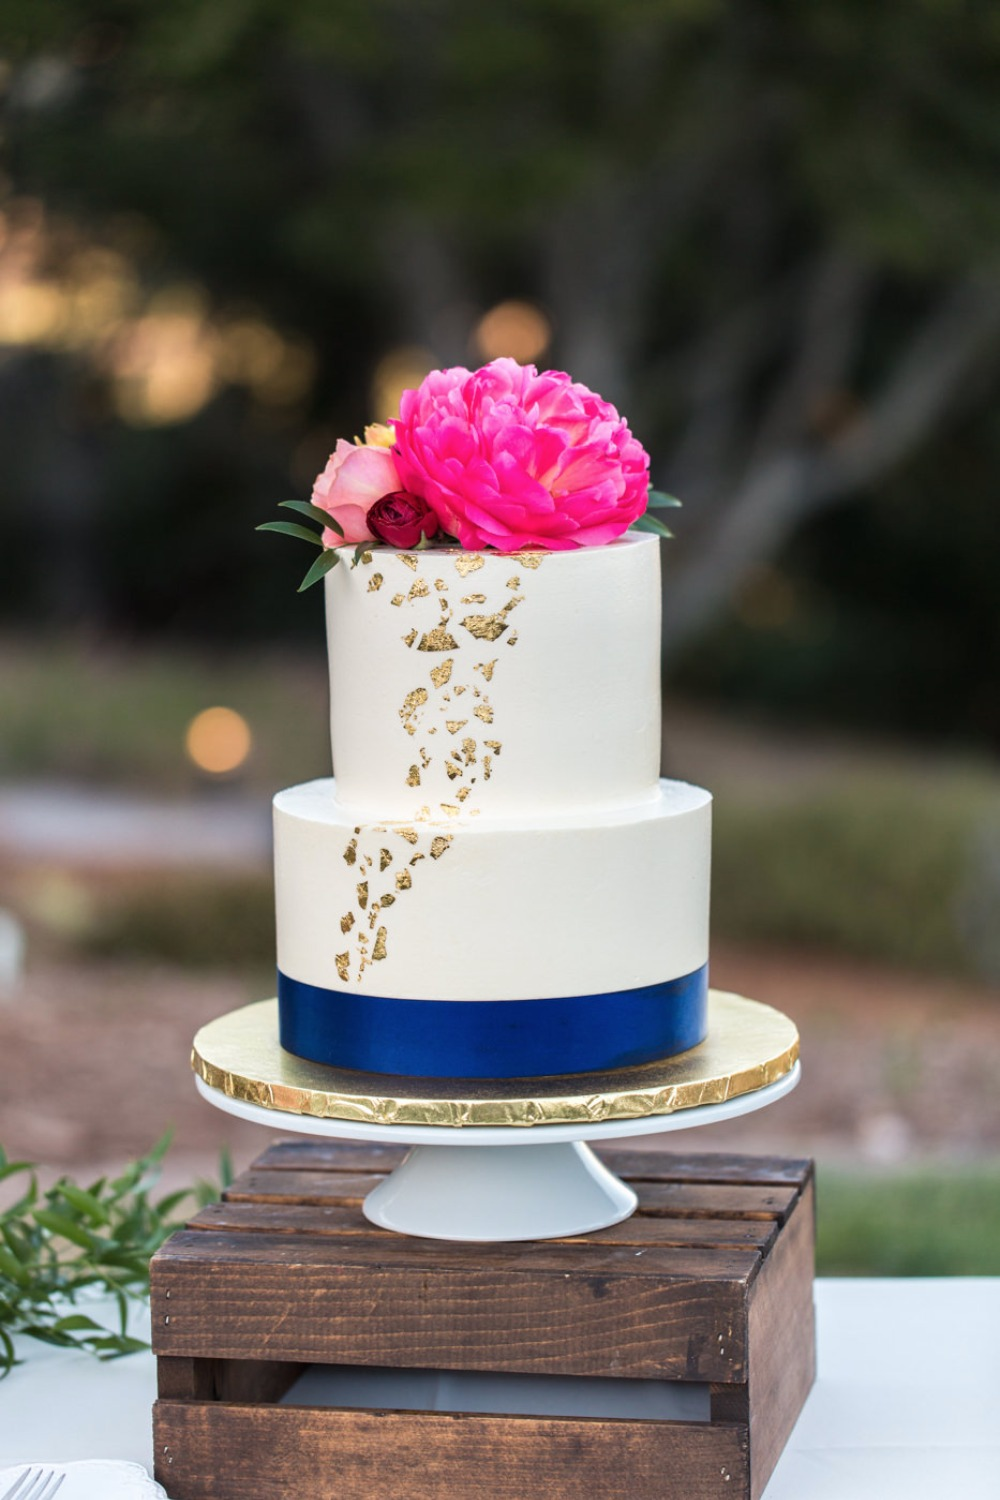 Elegant two tier cake